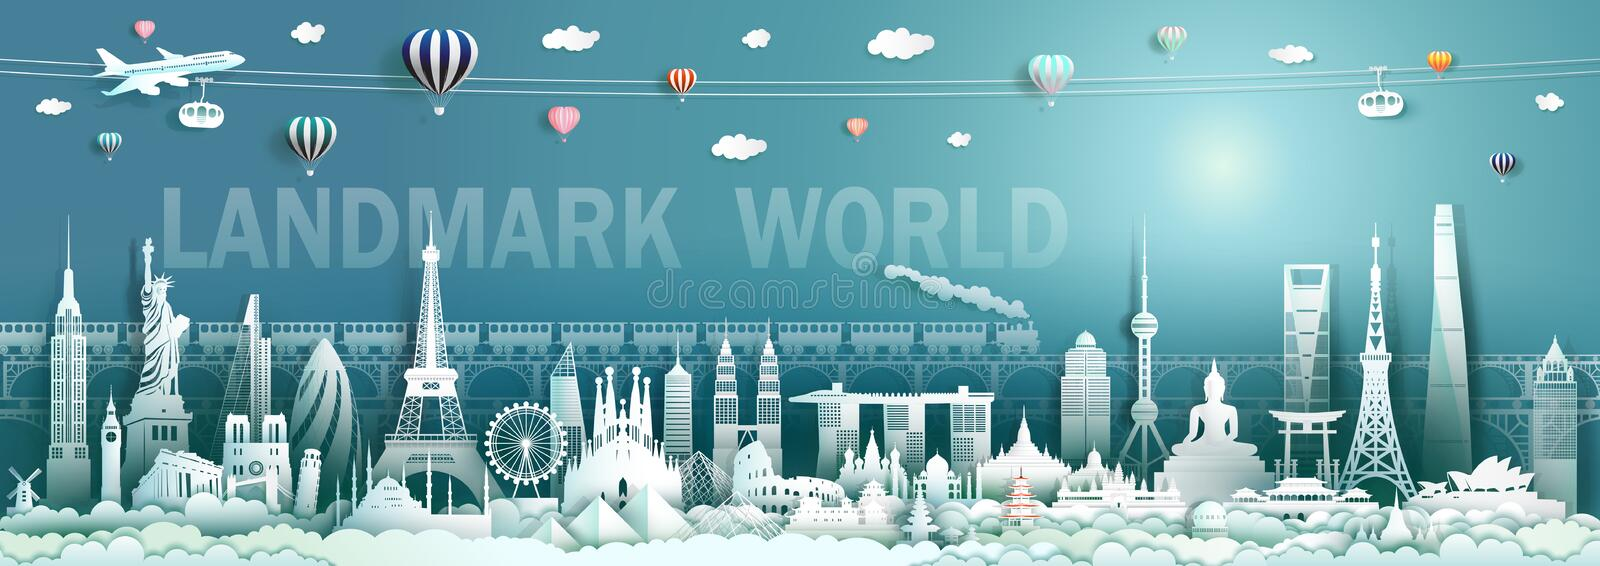 Travel landmarks world with modern and ancient architecture background vector illustration